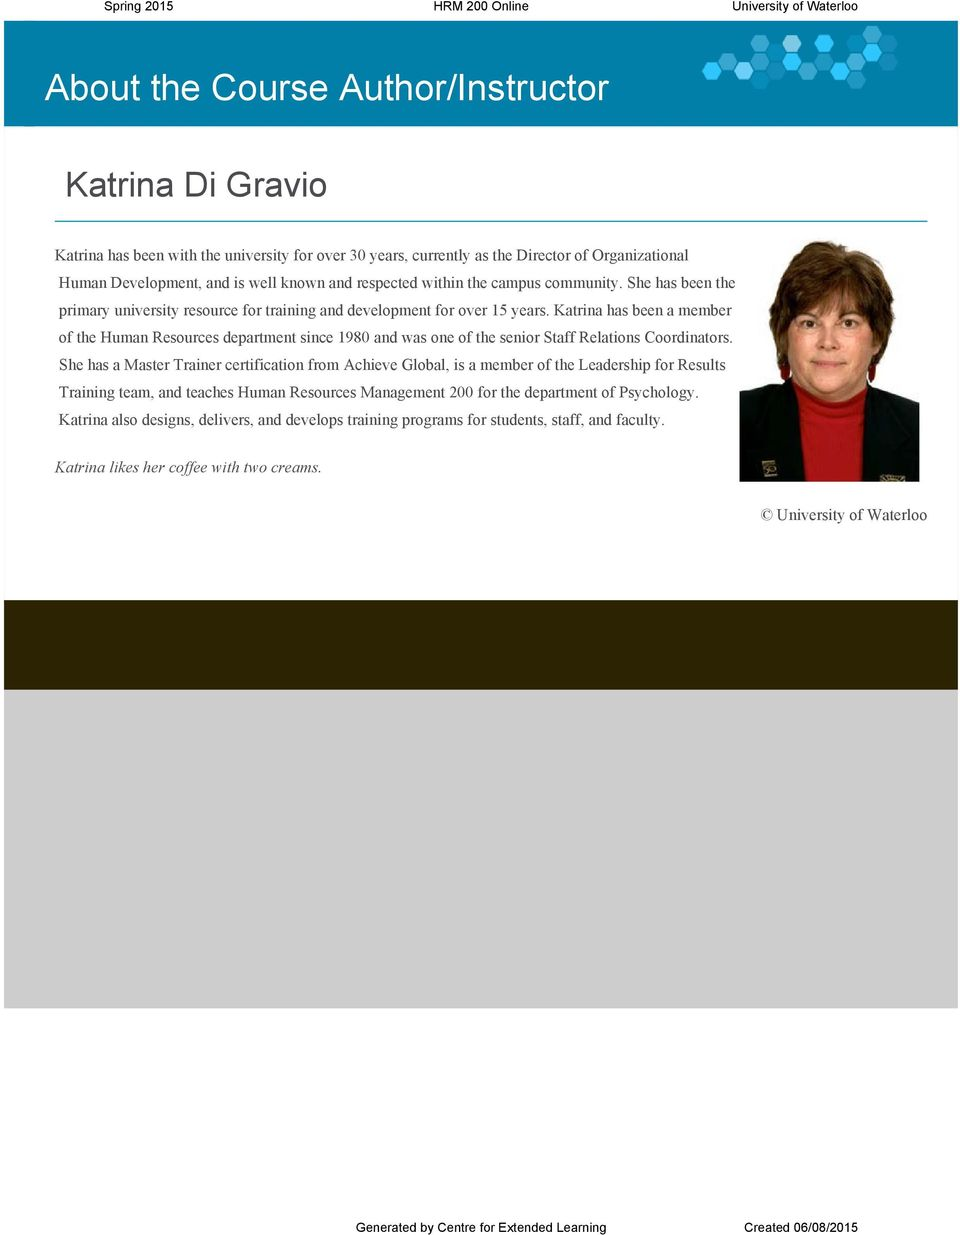 Katrina has been a member of the Human Resources department since 1980 and was one of the senior Staff Relations Coordinators.